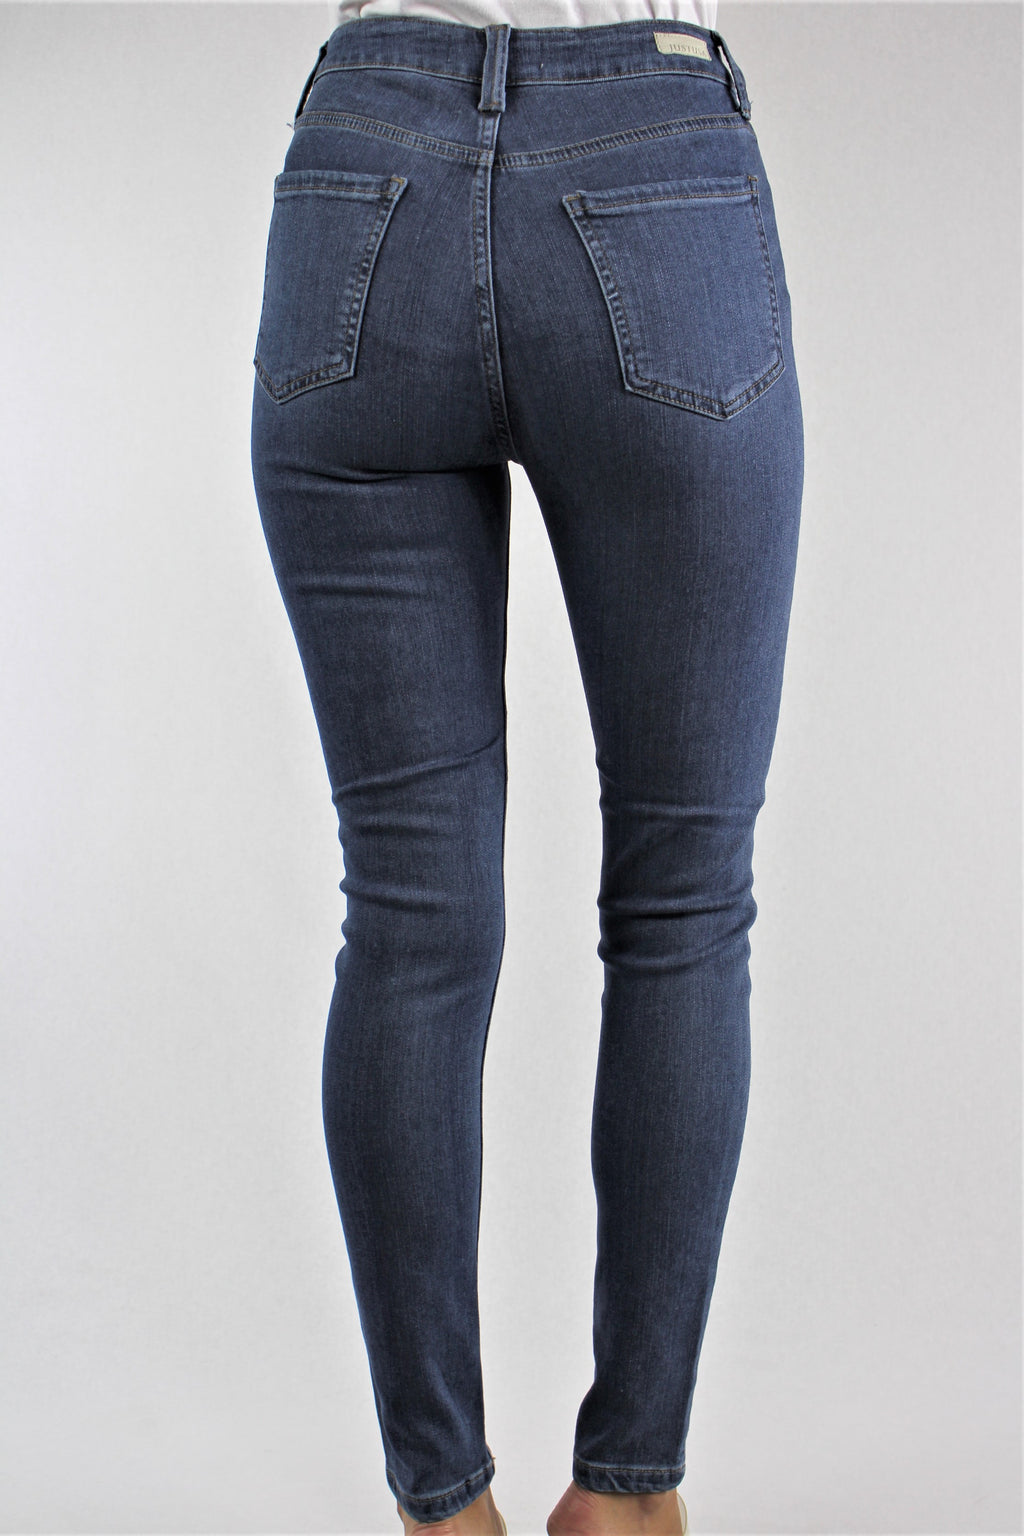 Women's Medium Wash Skinny Jeans